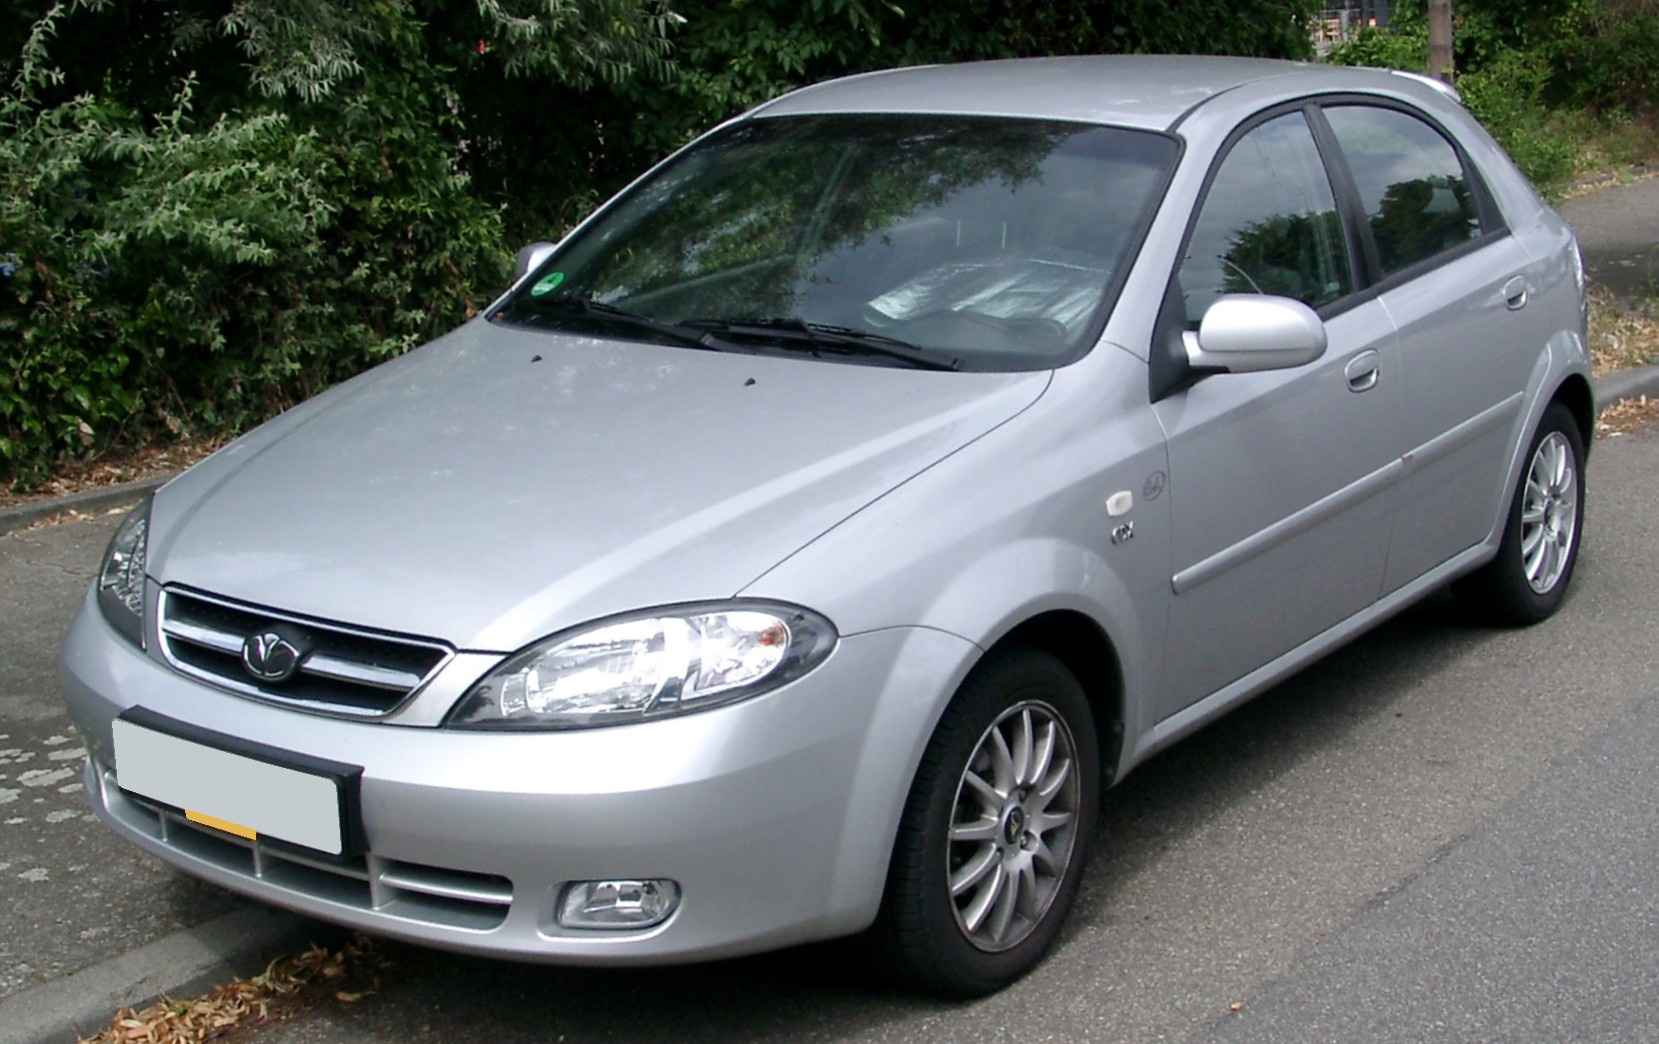 daewoo lacetti images #1